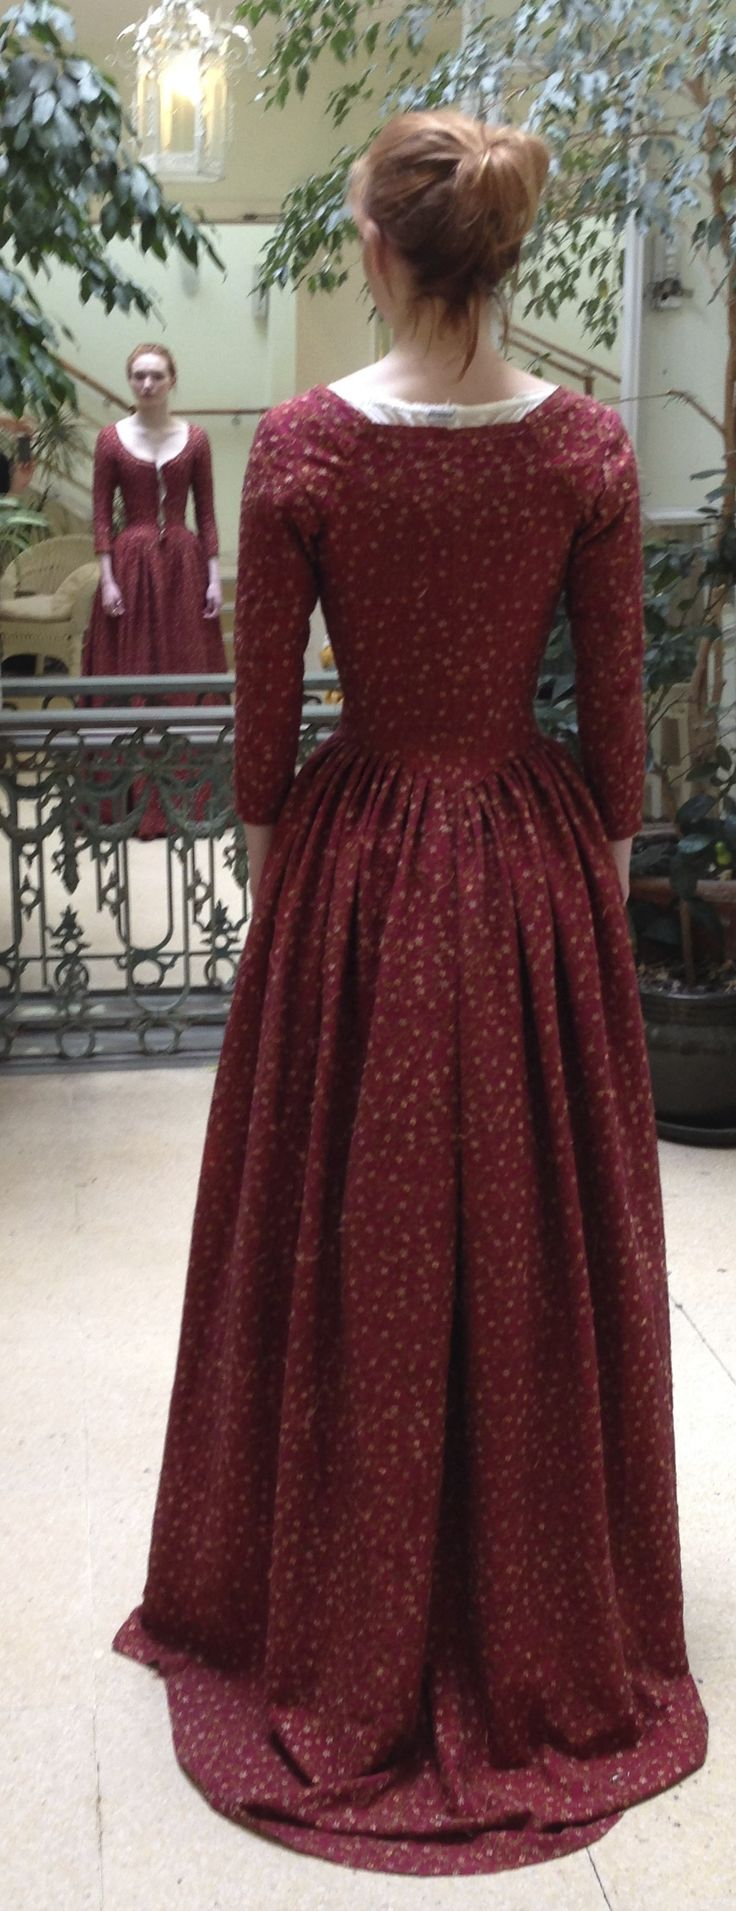 Demelza (Eleanor Tomlinson) costume fitting for Christmas dress, made from embroidered dyed silk. Courtesy of Marianne Agertoft/Mammoth Screen. | Poldark, as seen on Masterpiece on PBS